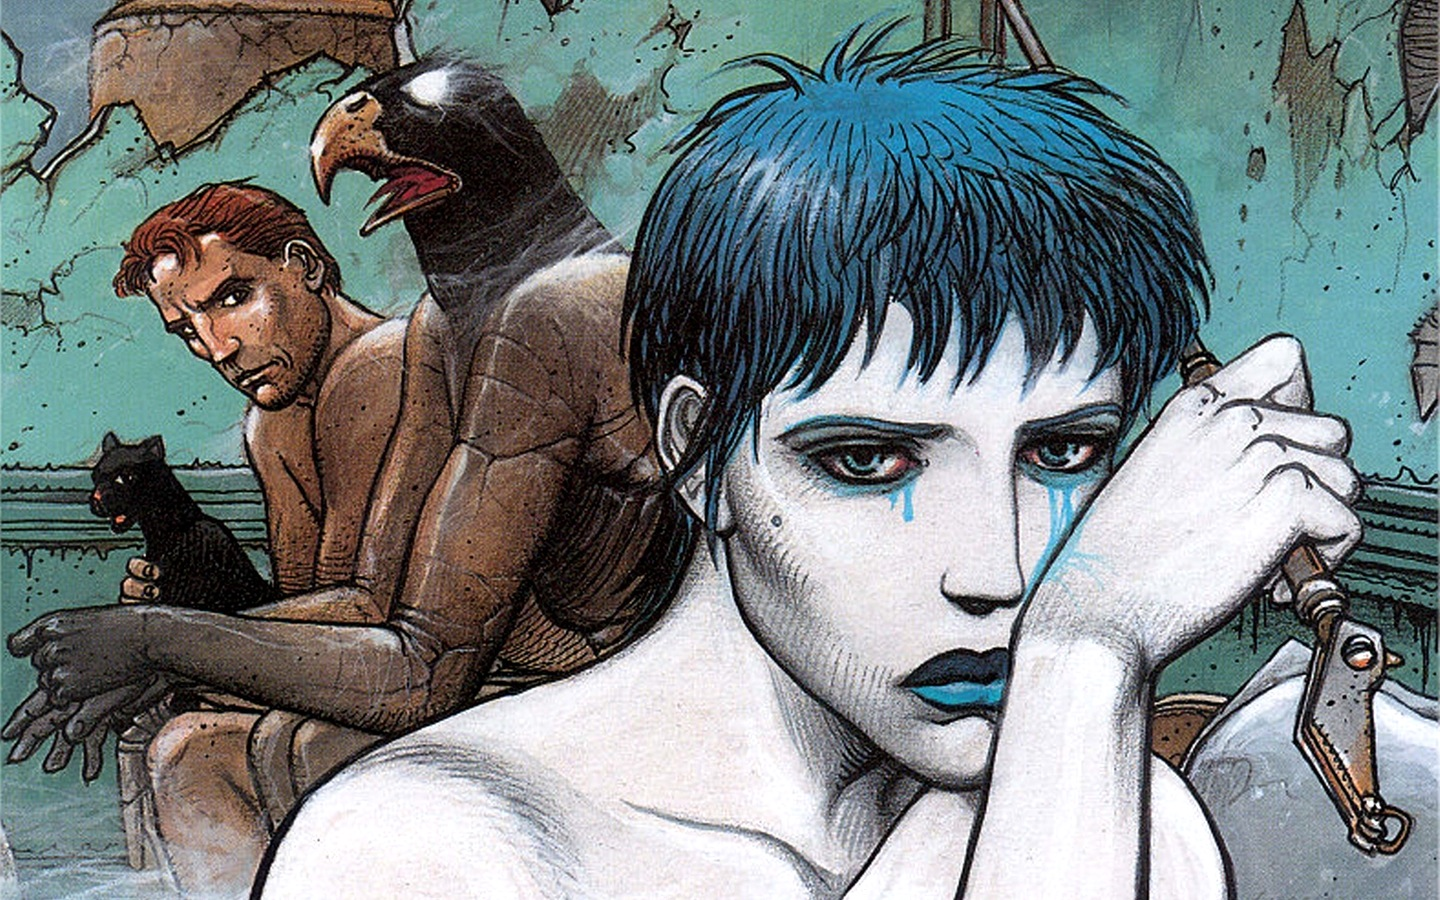 Enki Bilal Nikopol Trilogy Lady in Blue